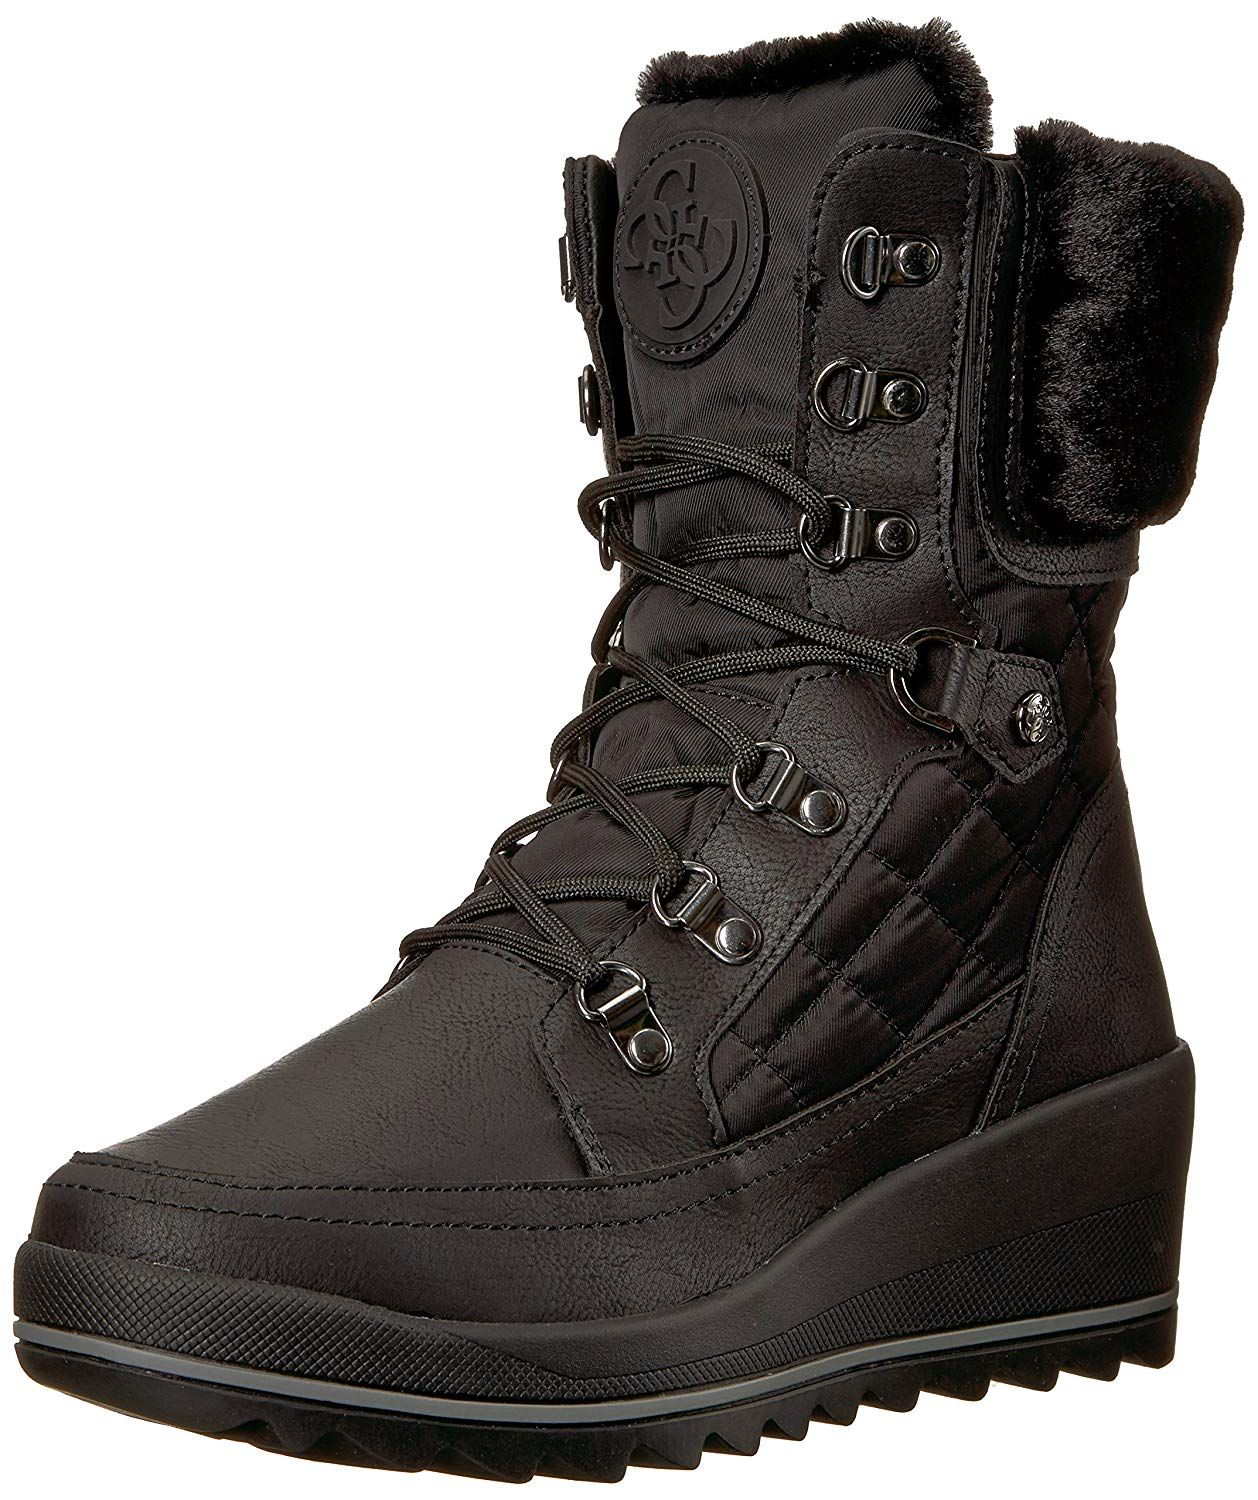 8341753a346 GUESS Women's Leland Mid Calf Boot, ** Many thanks for having viewed ...